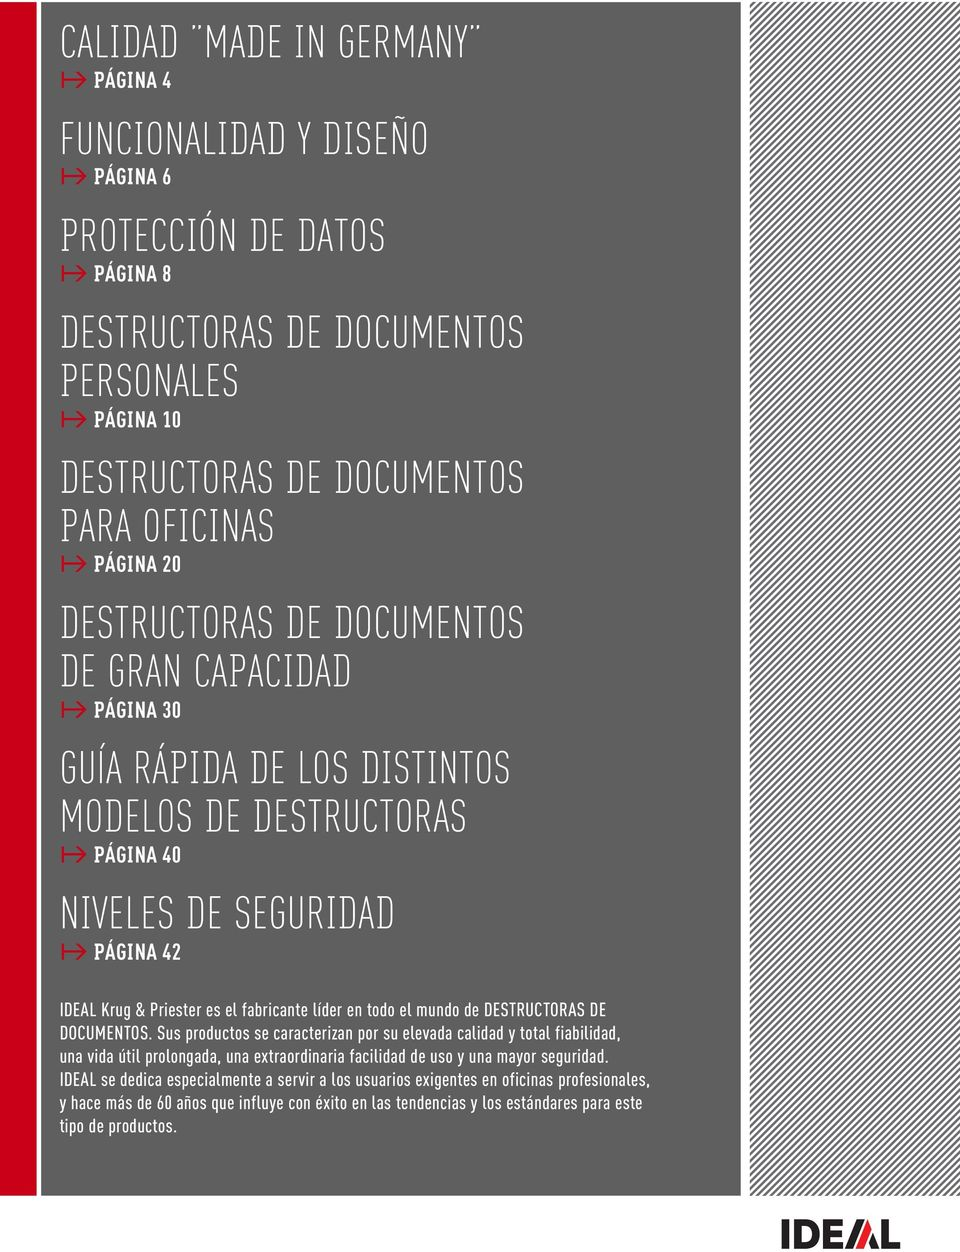 todo el mundo de DESTRUCTORAS DE DOCUMENTOS.